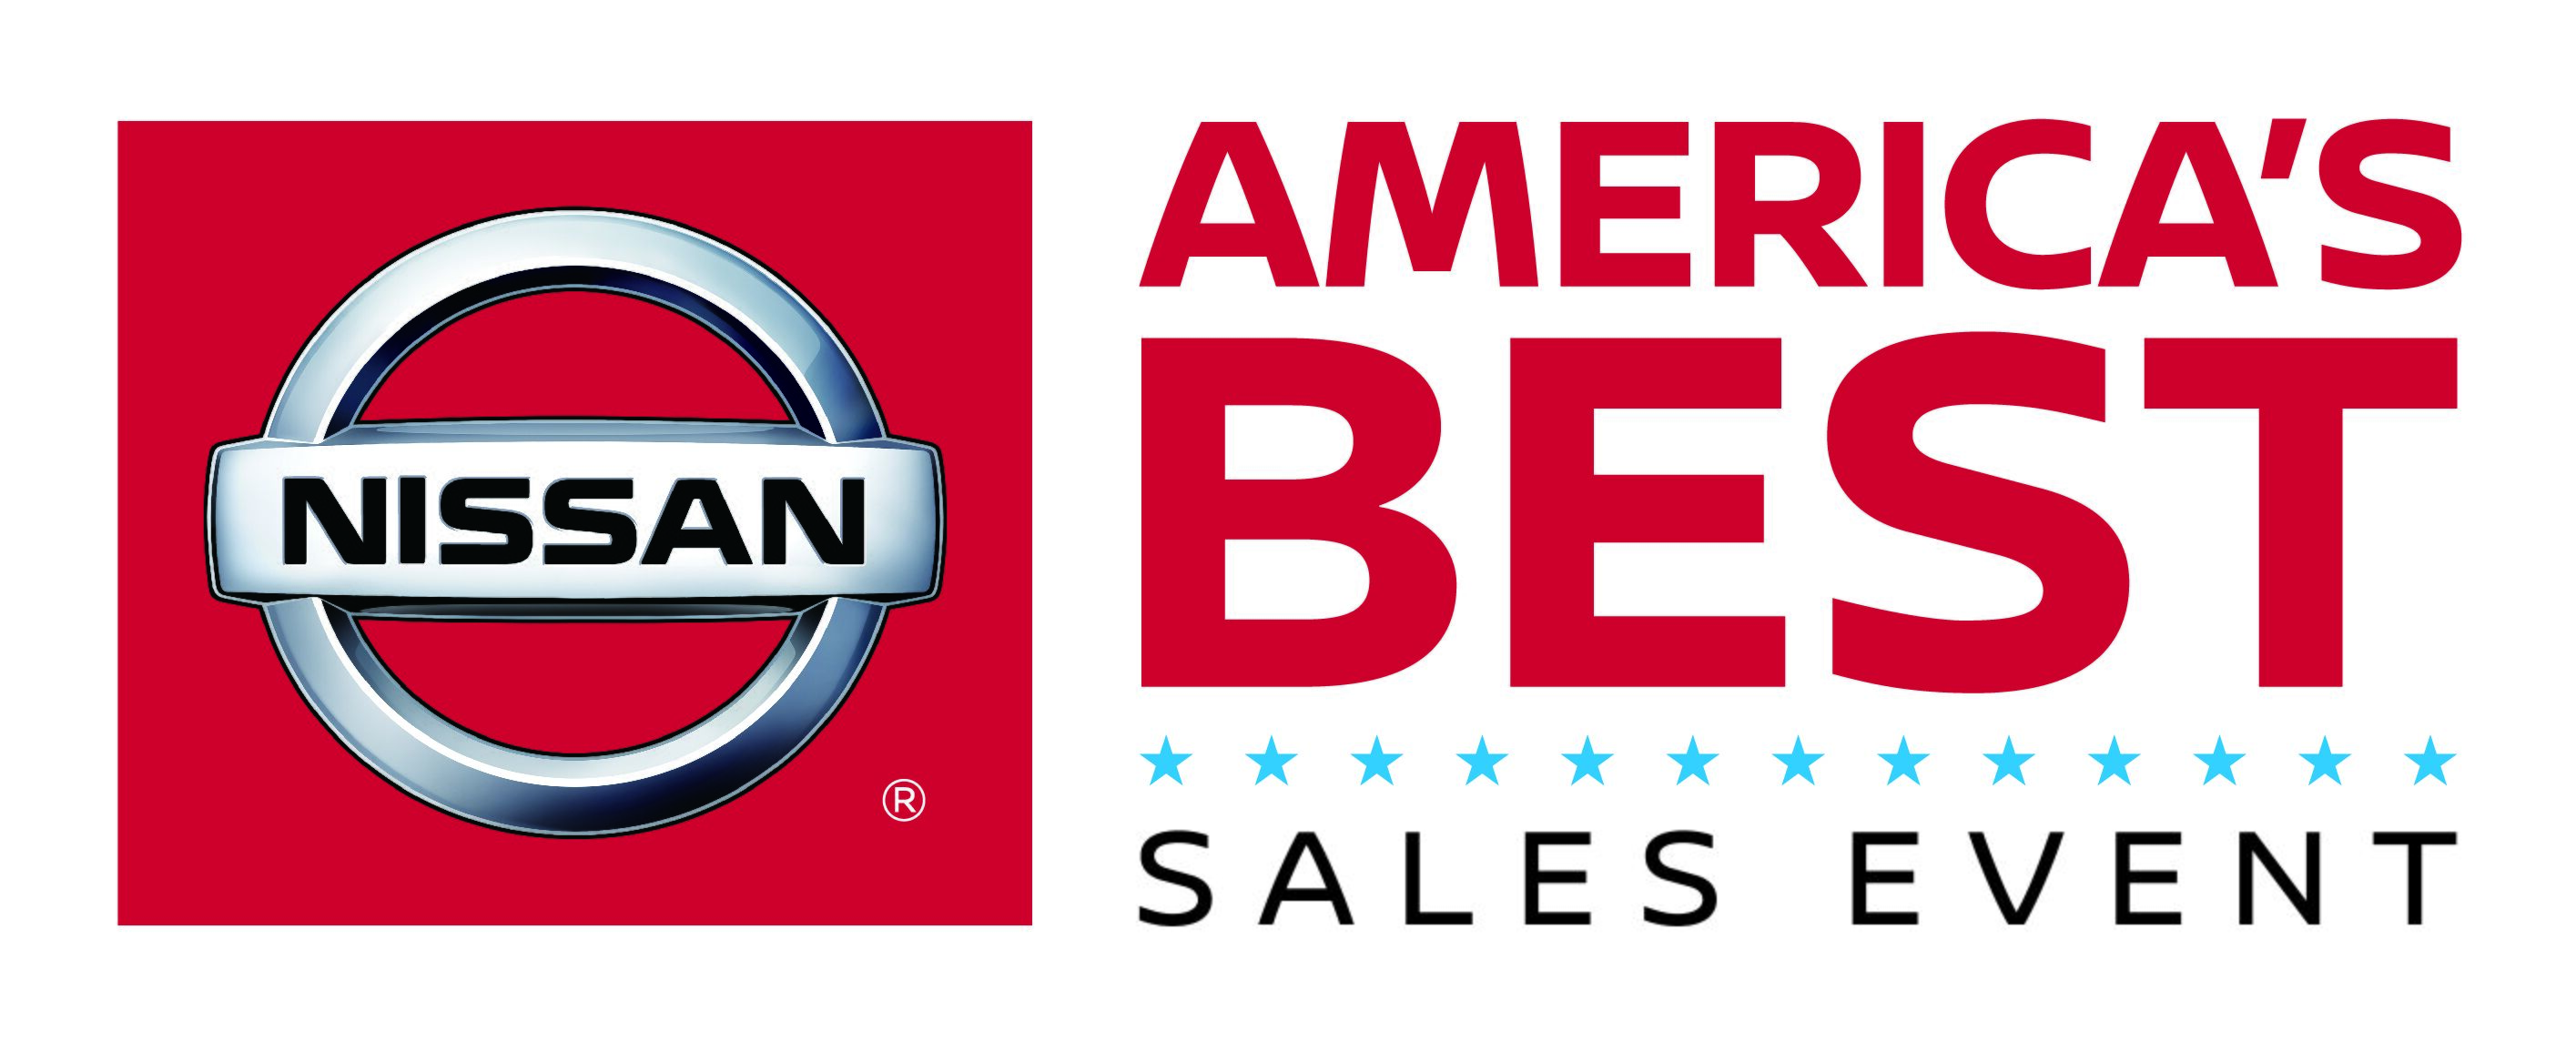 Nissan Americas Best Sales Event 2018